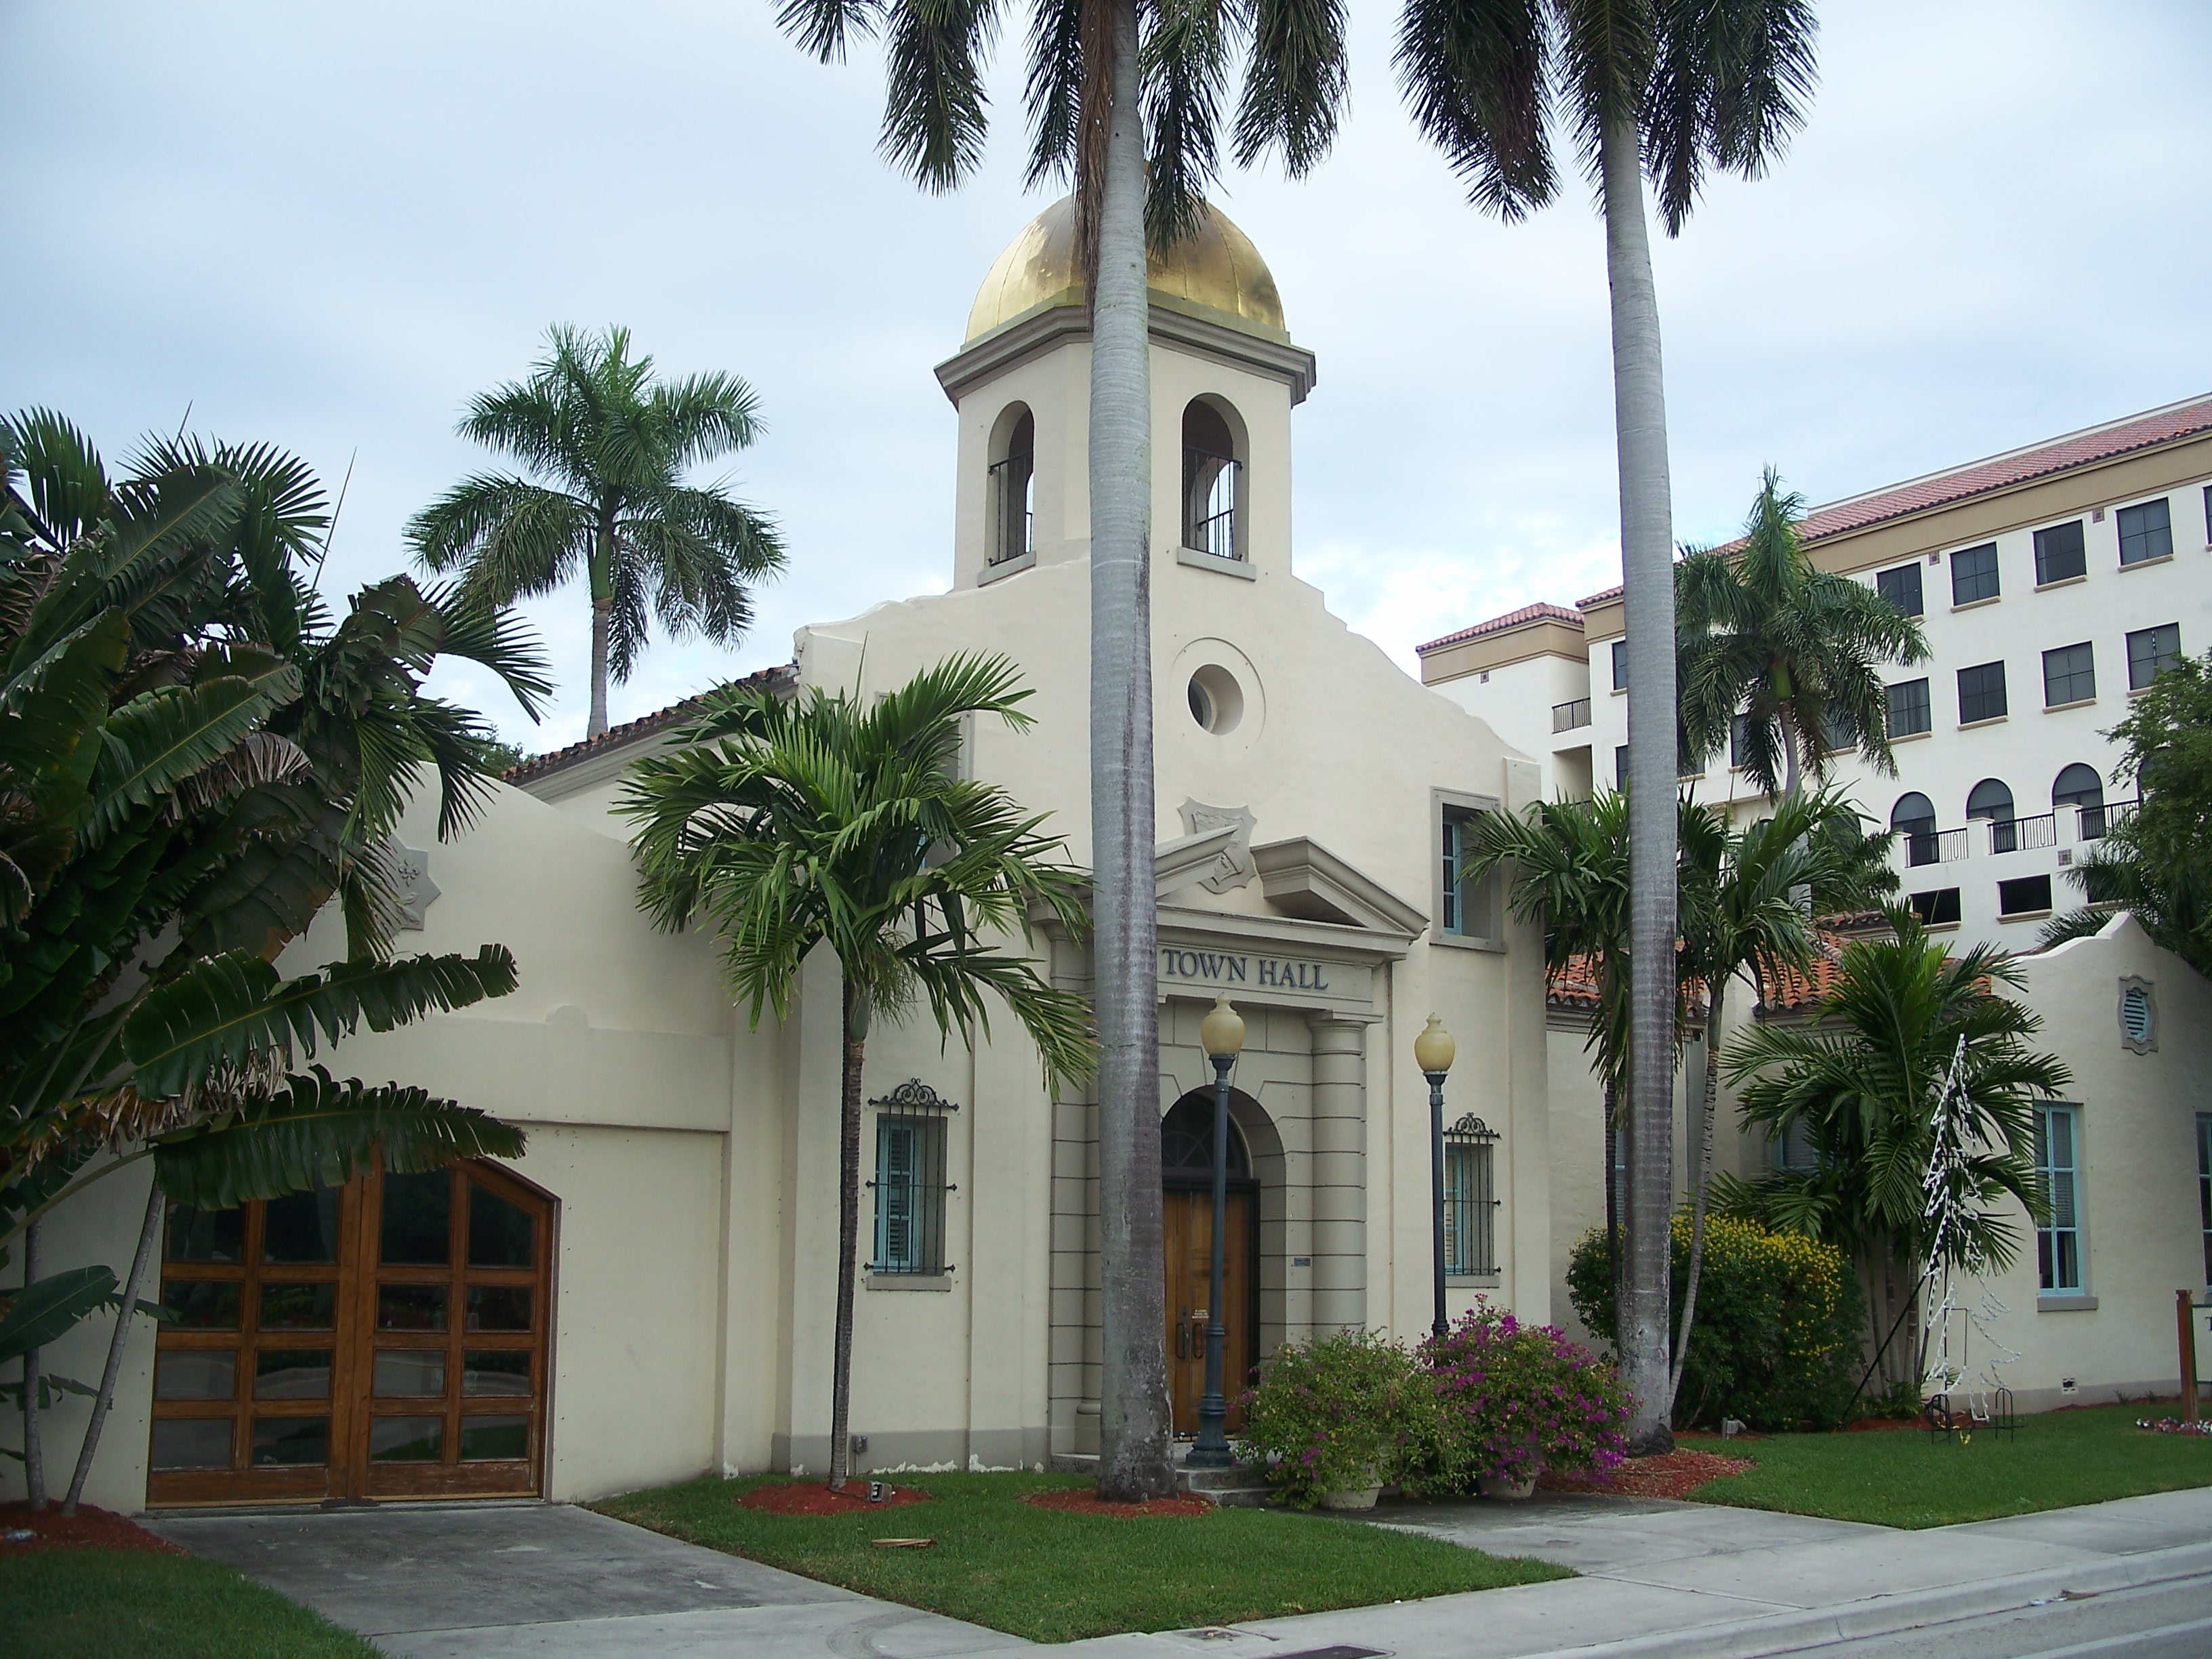 old-town-hall-boca-raton